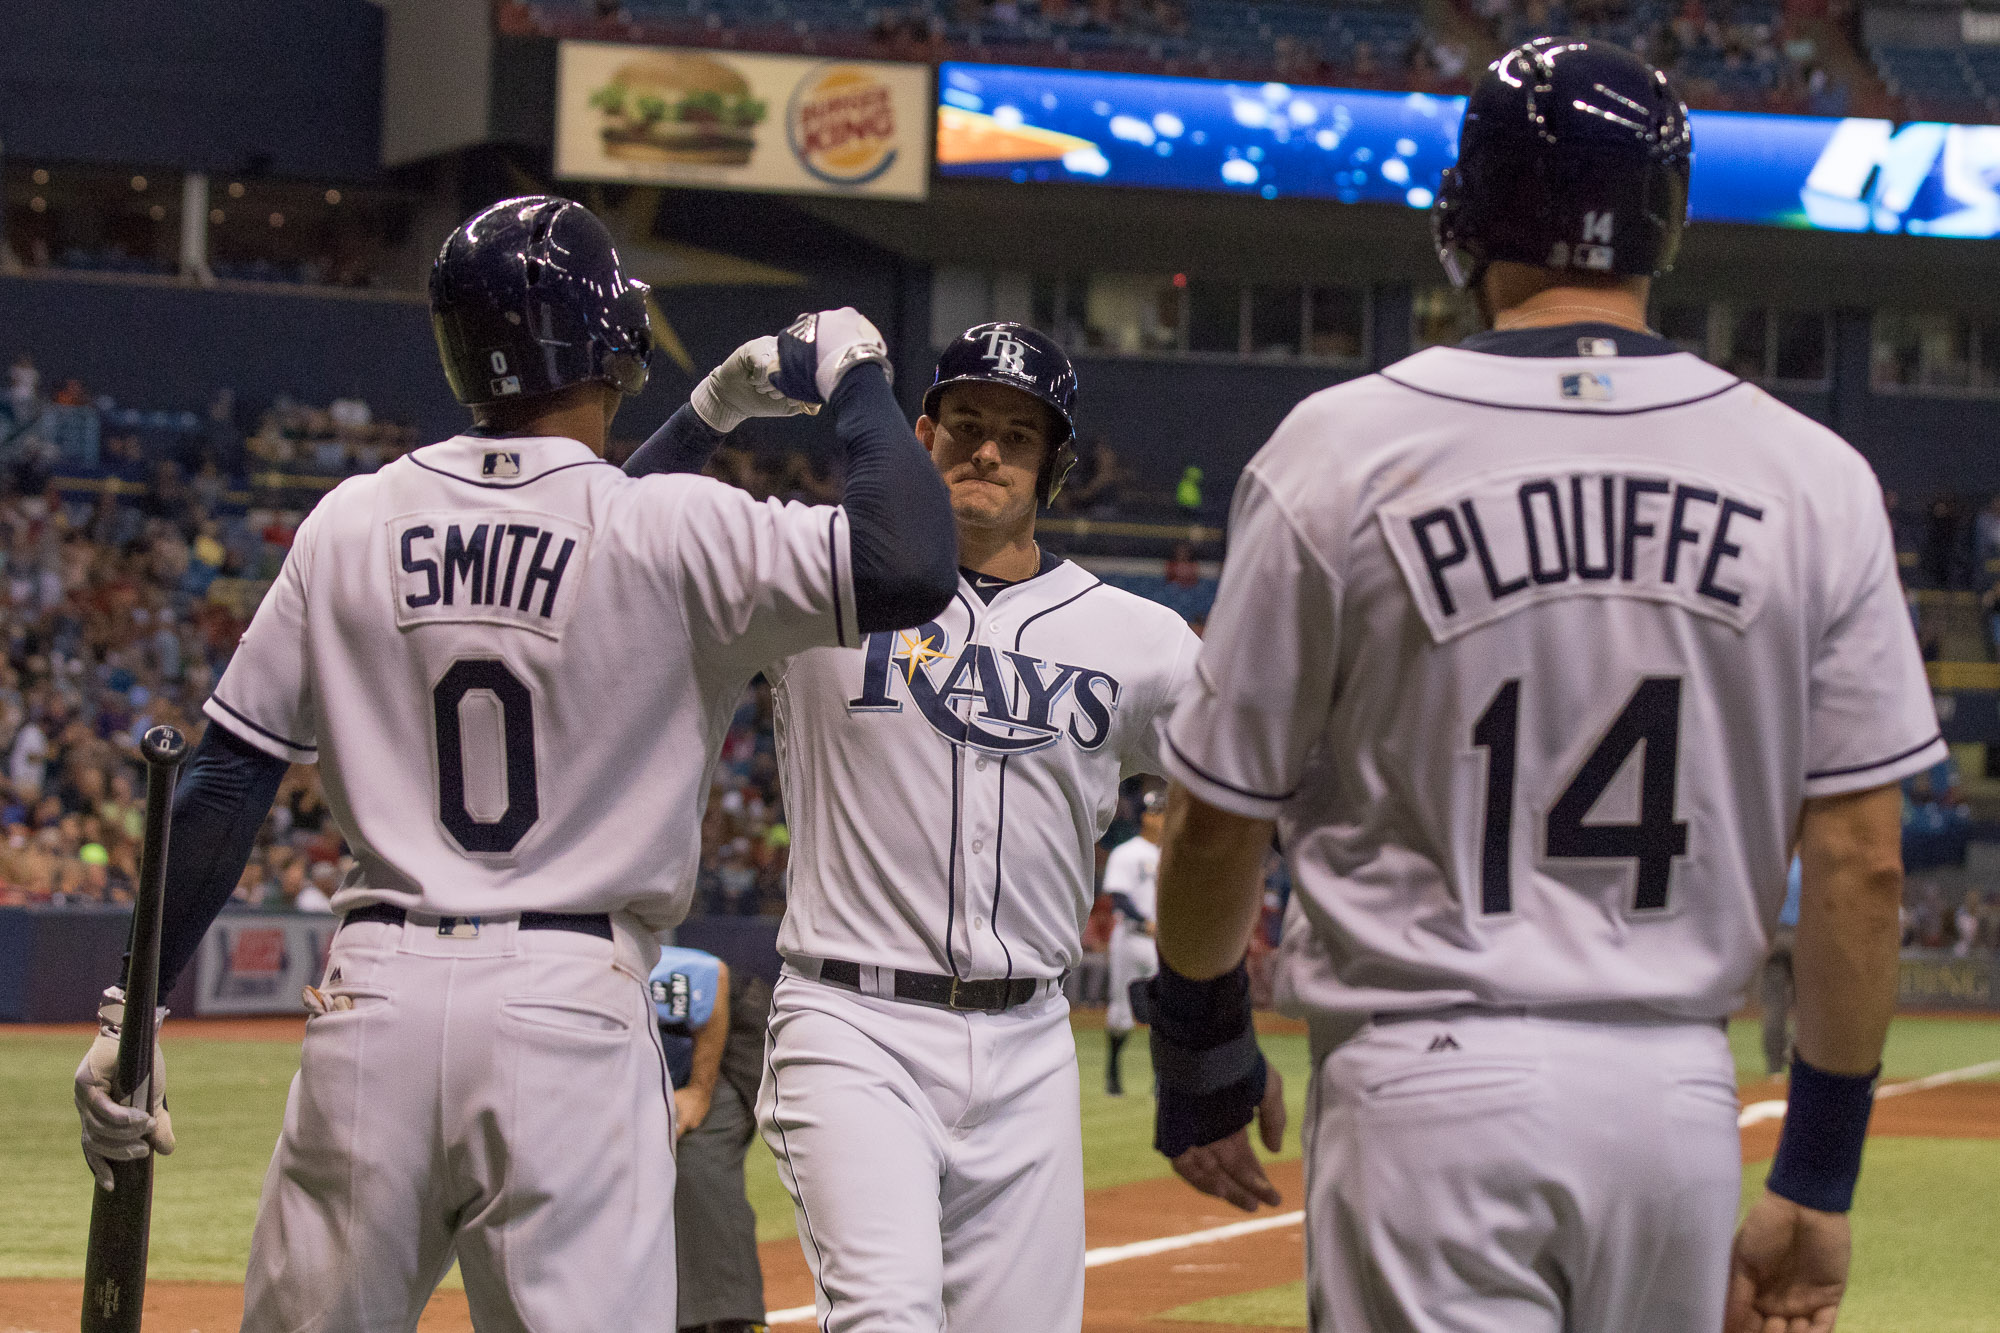 Robertson celebrates tying the game 3-3 with a homer./STEVEN MUNCIE